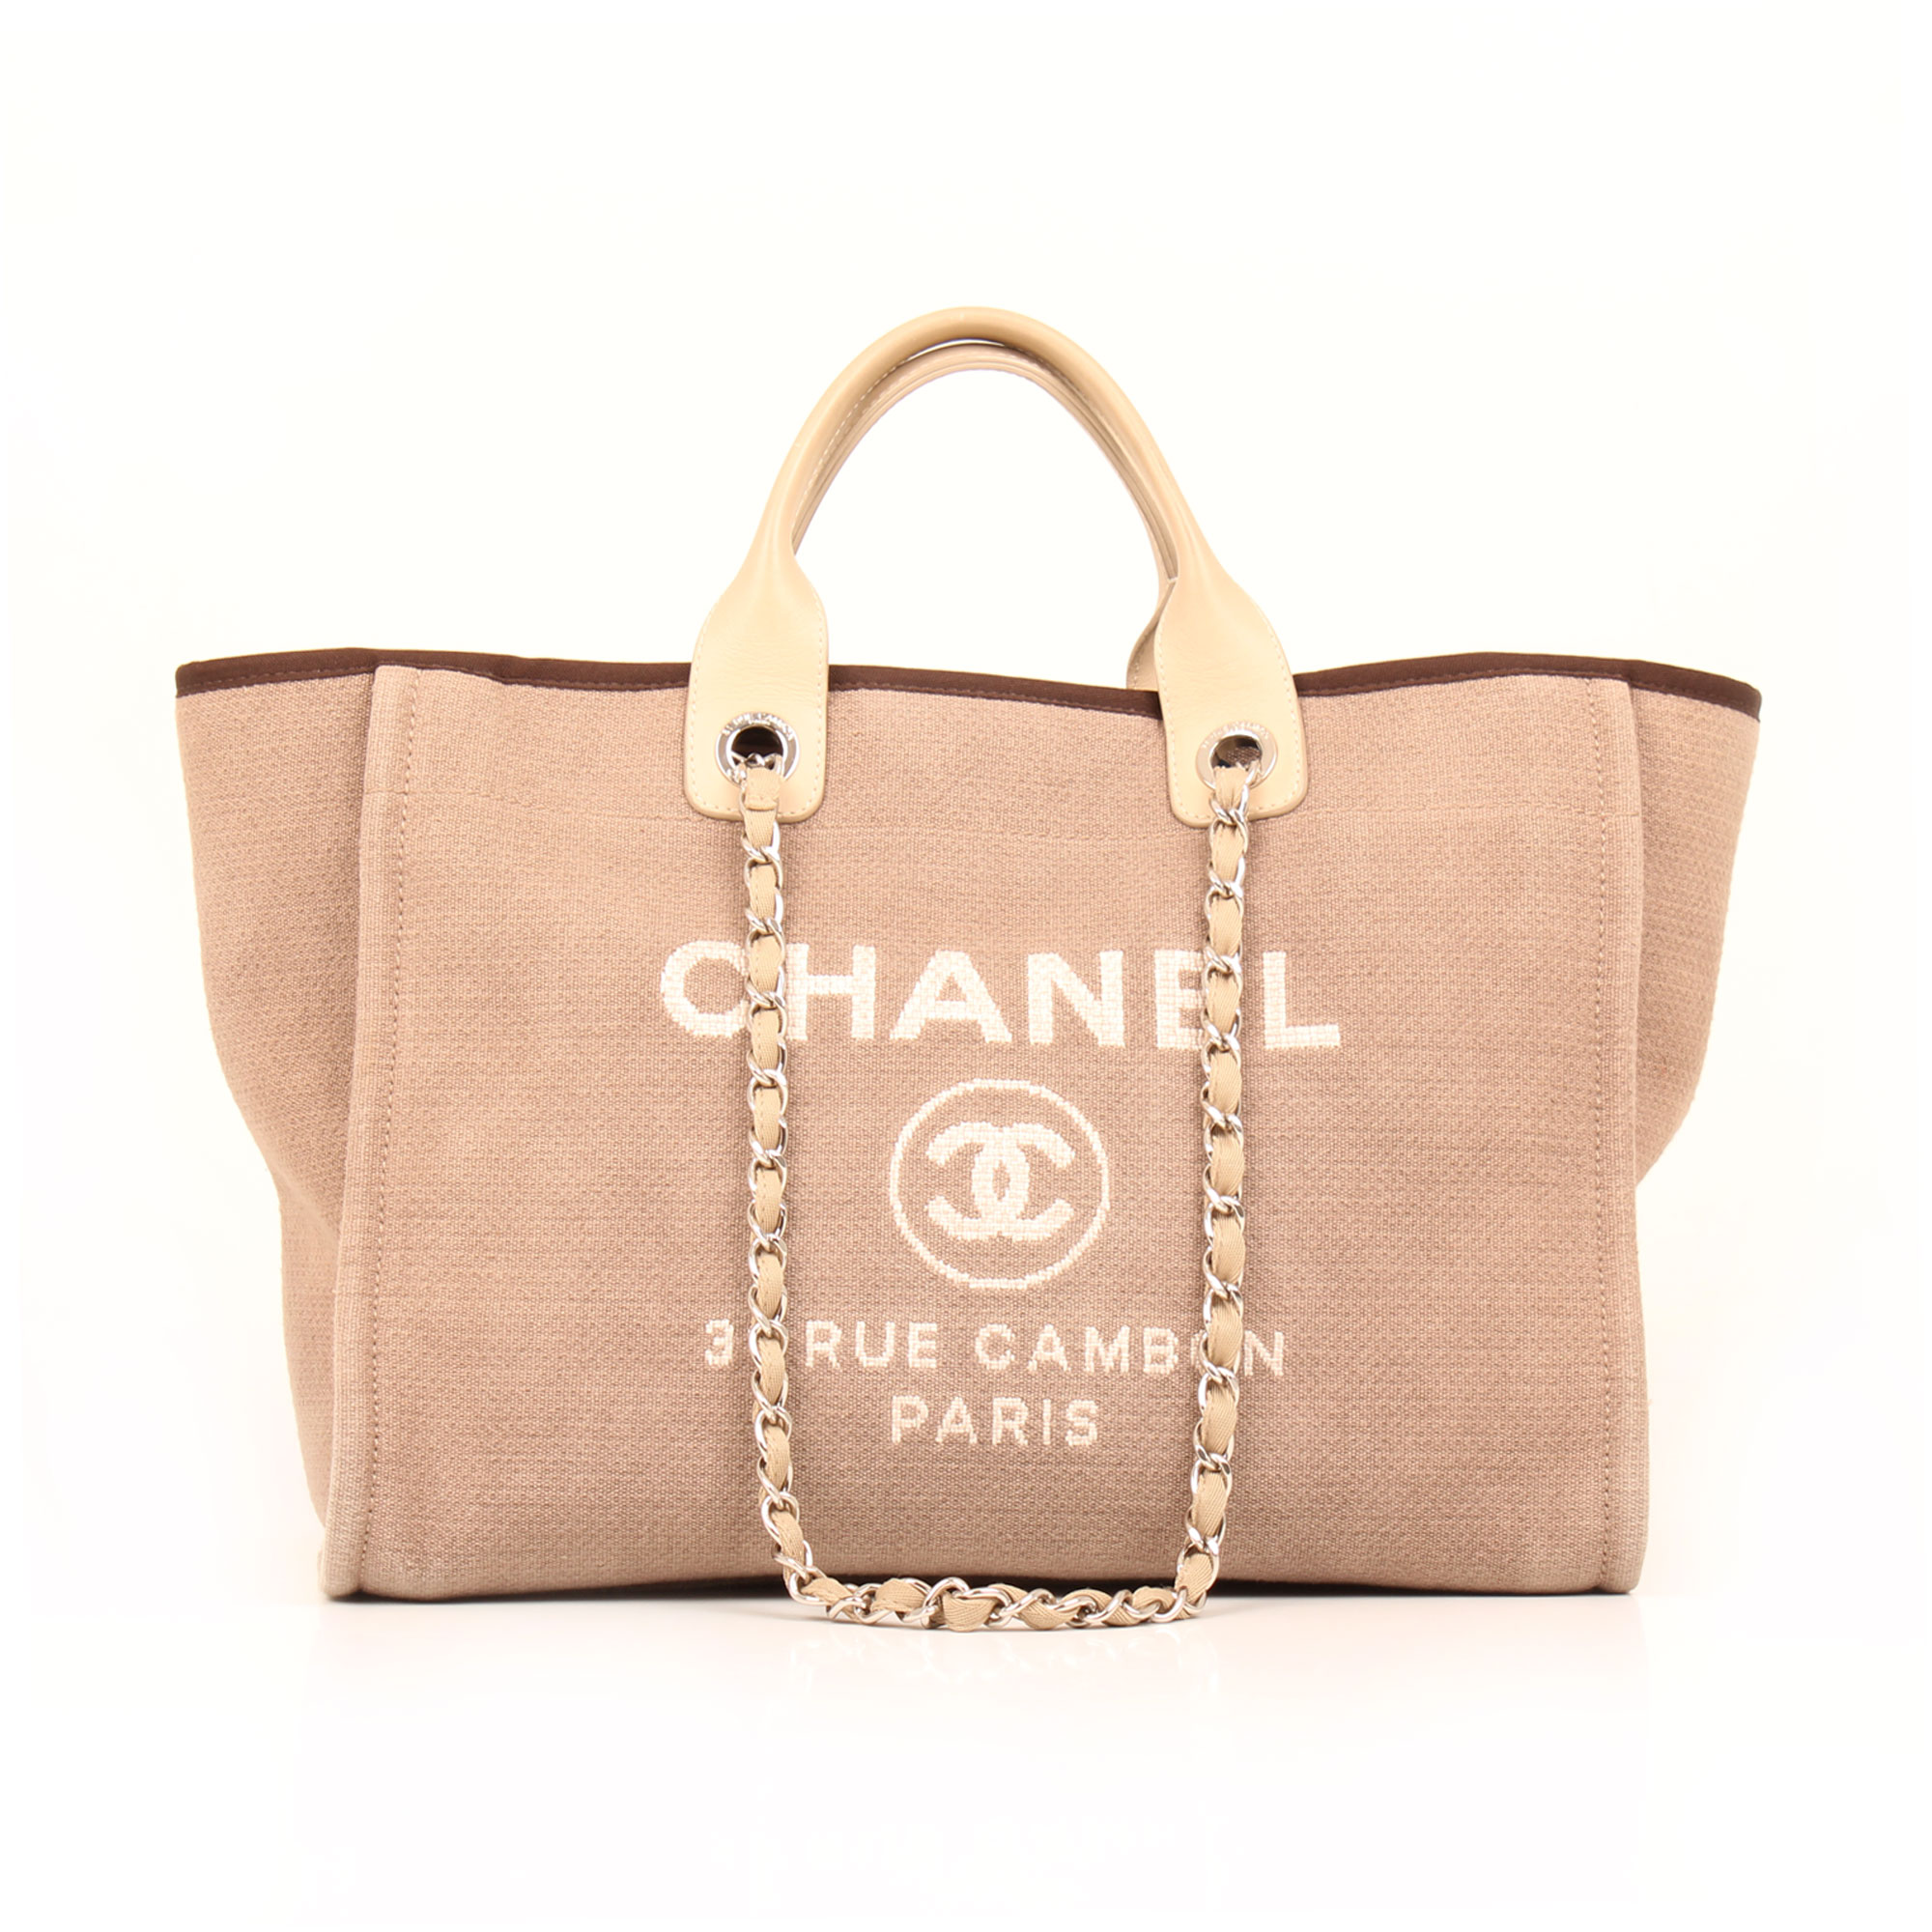 90c56d6e06bb Front image of chanel ecru deauville tote bag